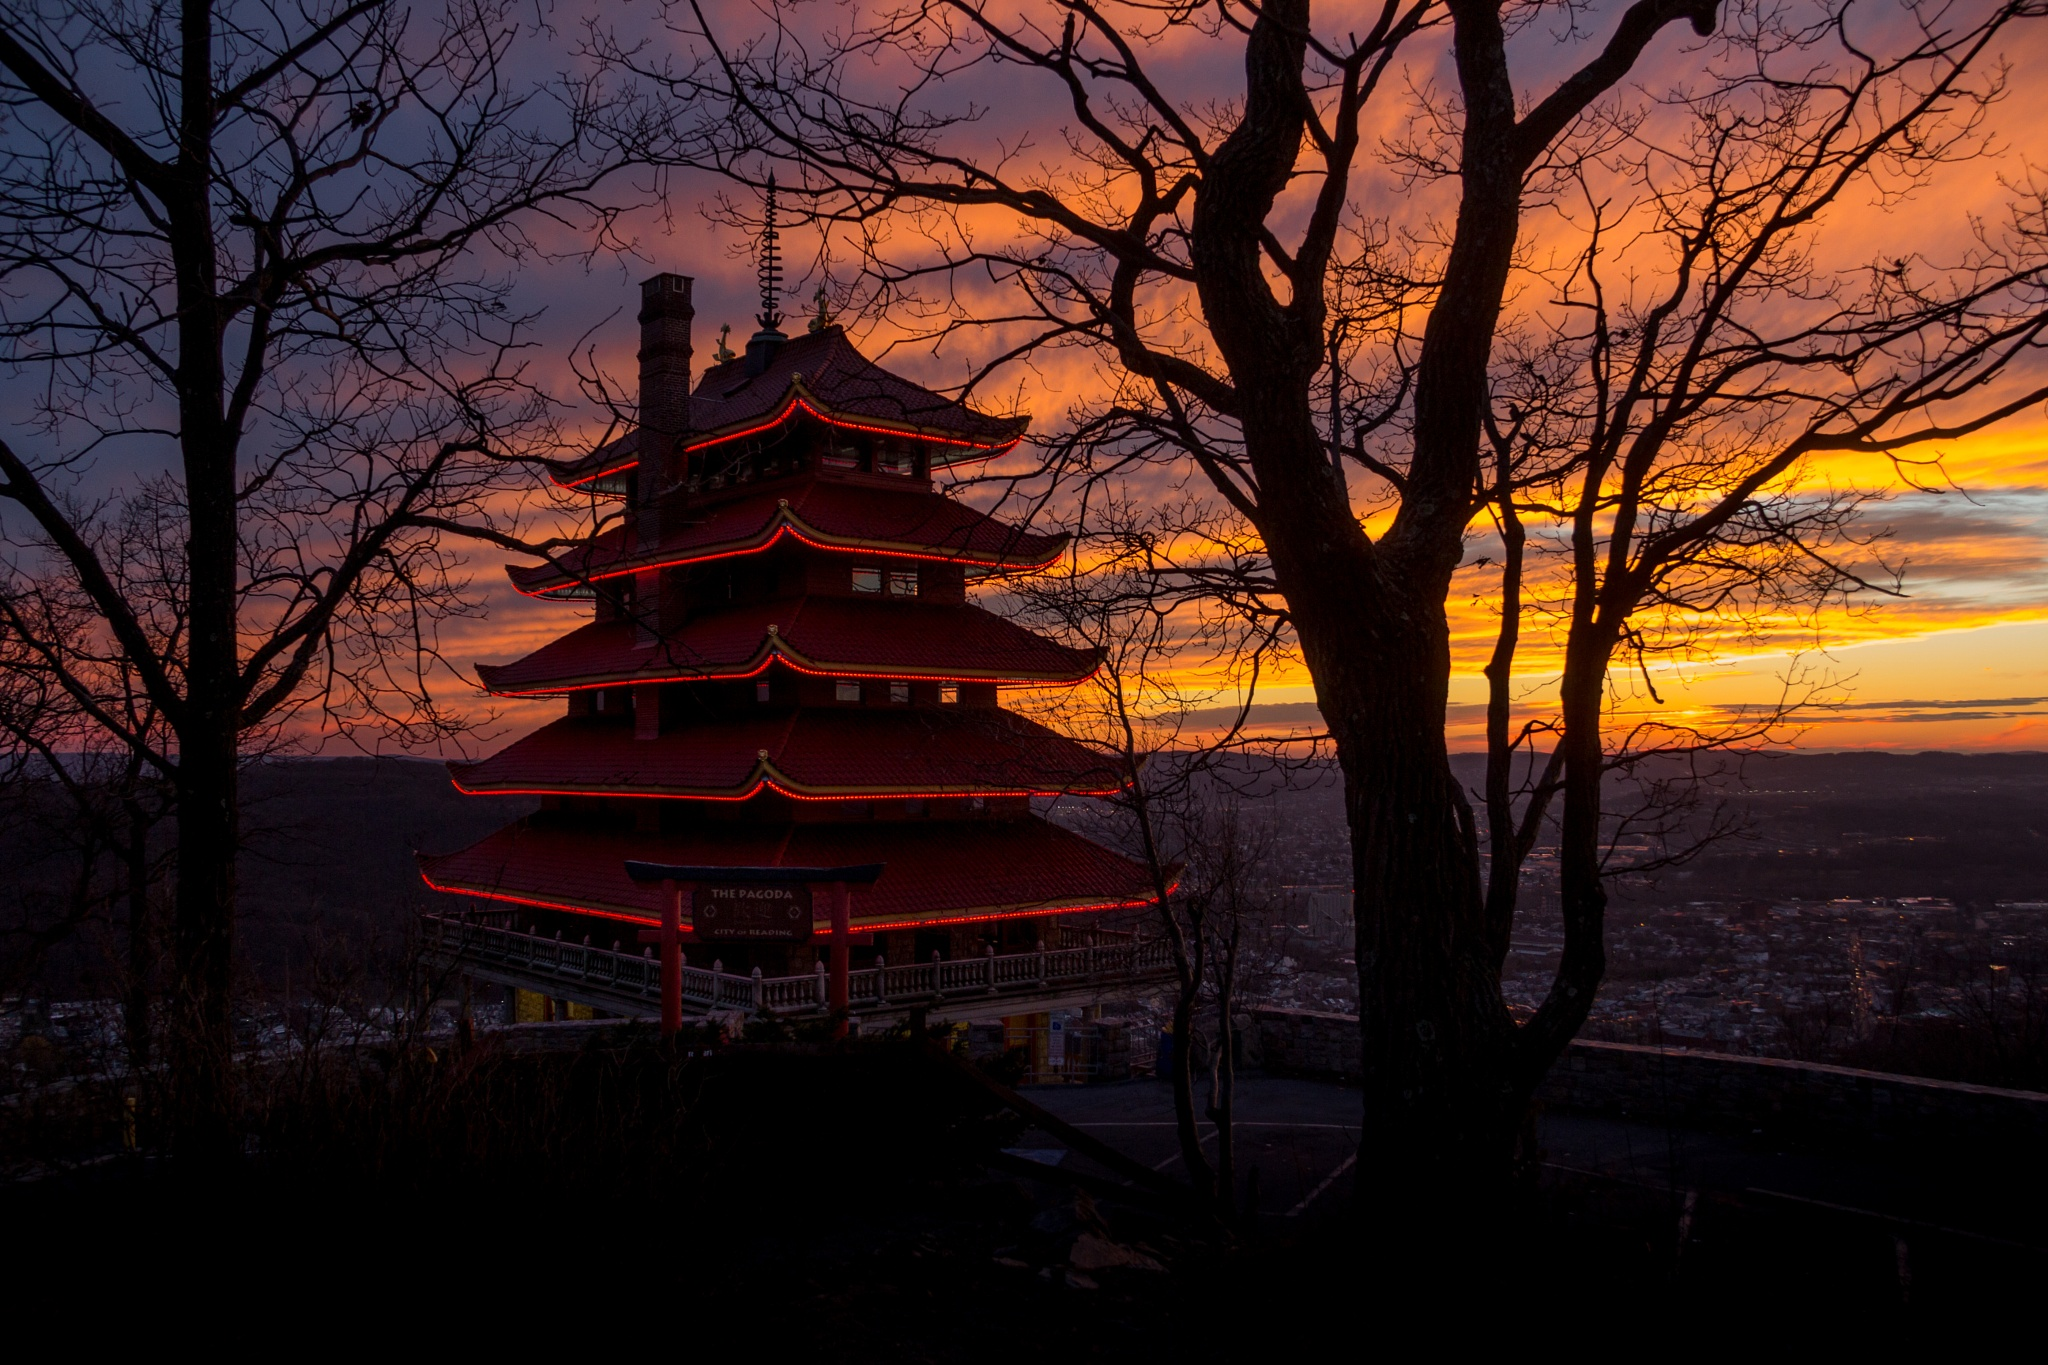 Pagoda in Sunset by Otto Jay Lehrbach